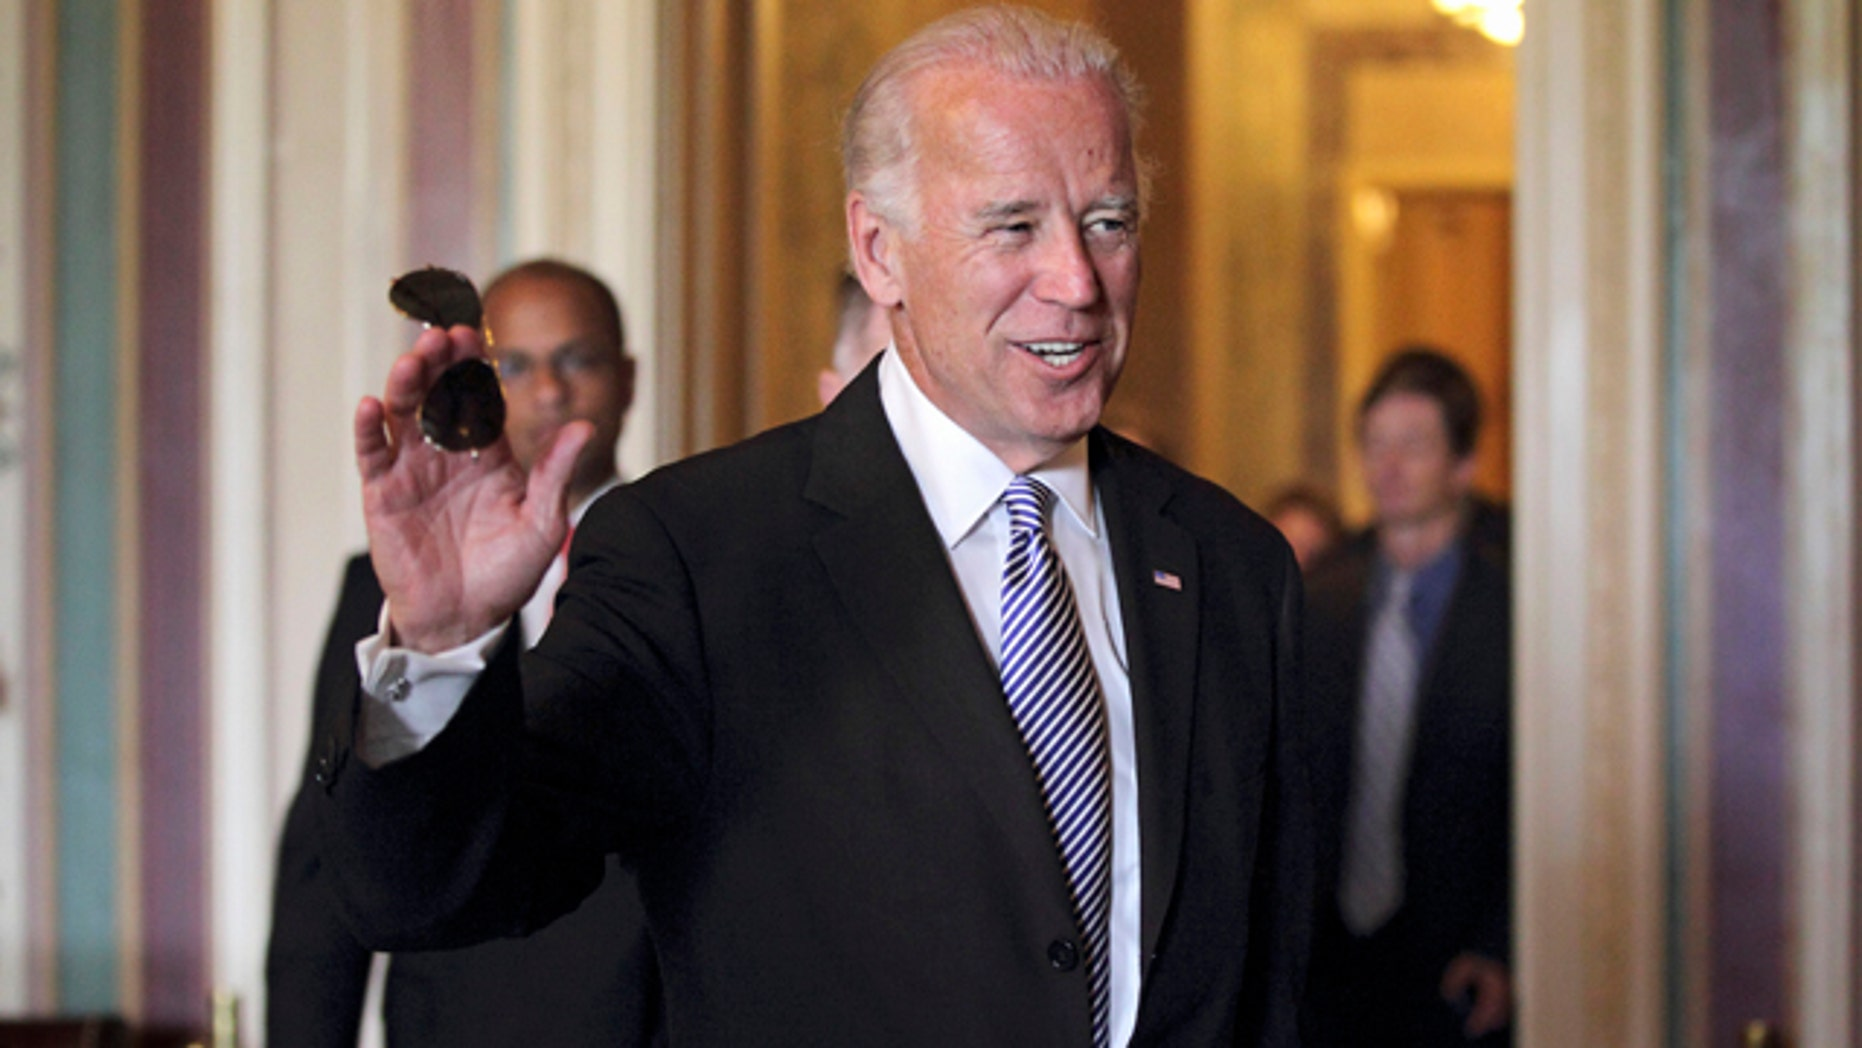 Tuesday: Vice President Joe Biden returns to Capitol Hill in Washington for continuing negotiations between Republicans and Democrats in Congress on how to solve America's debt crisis and budget problems.